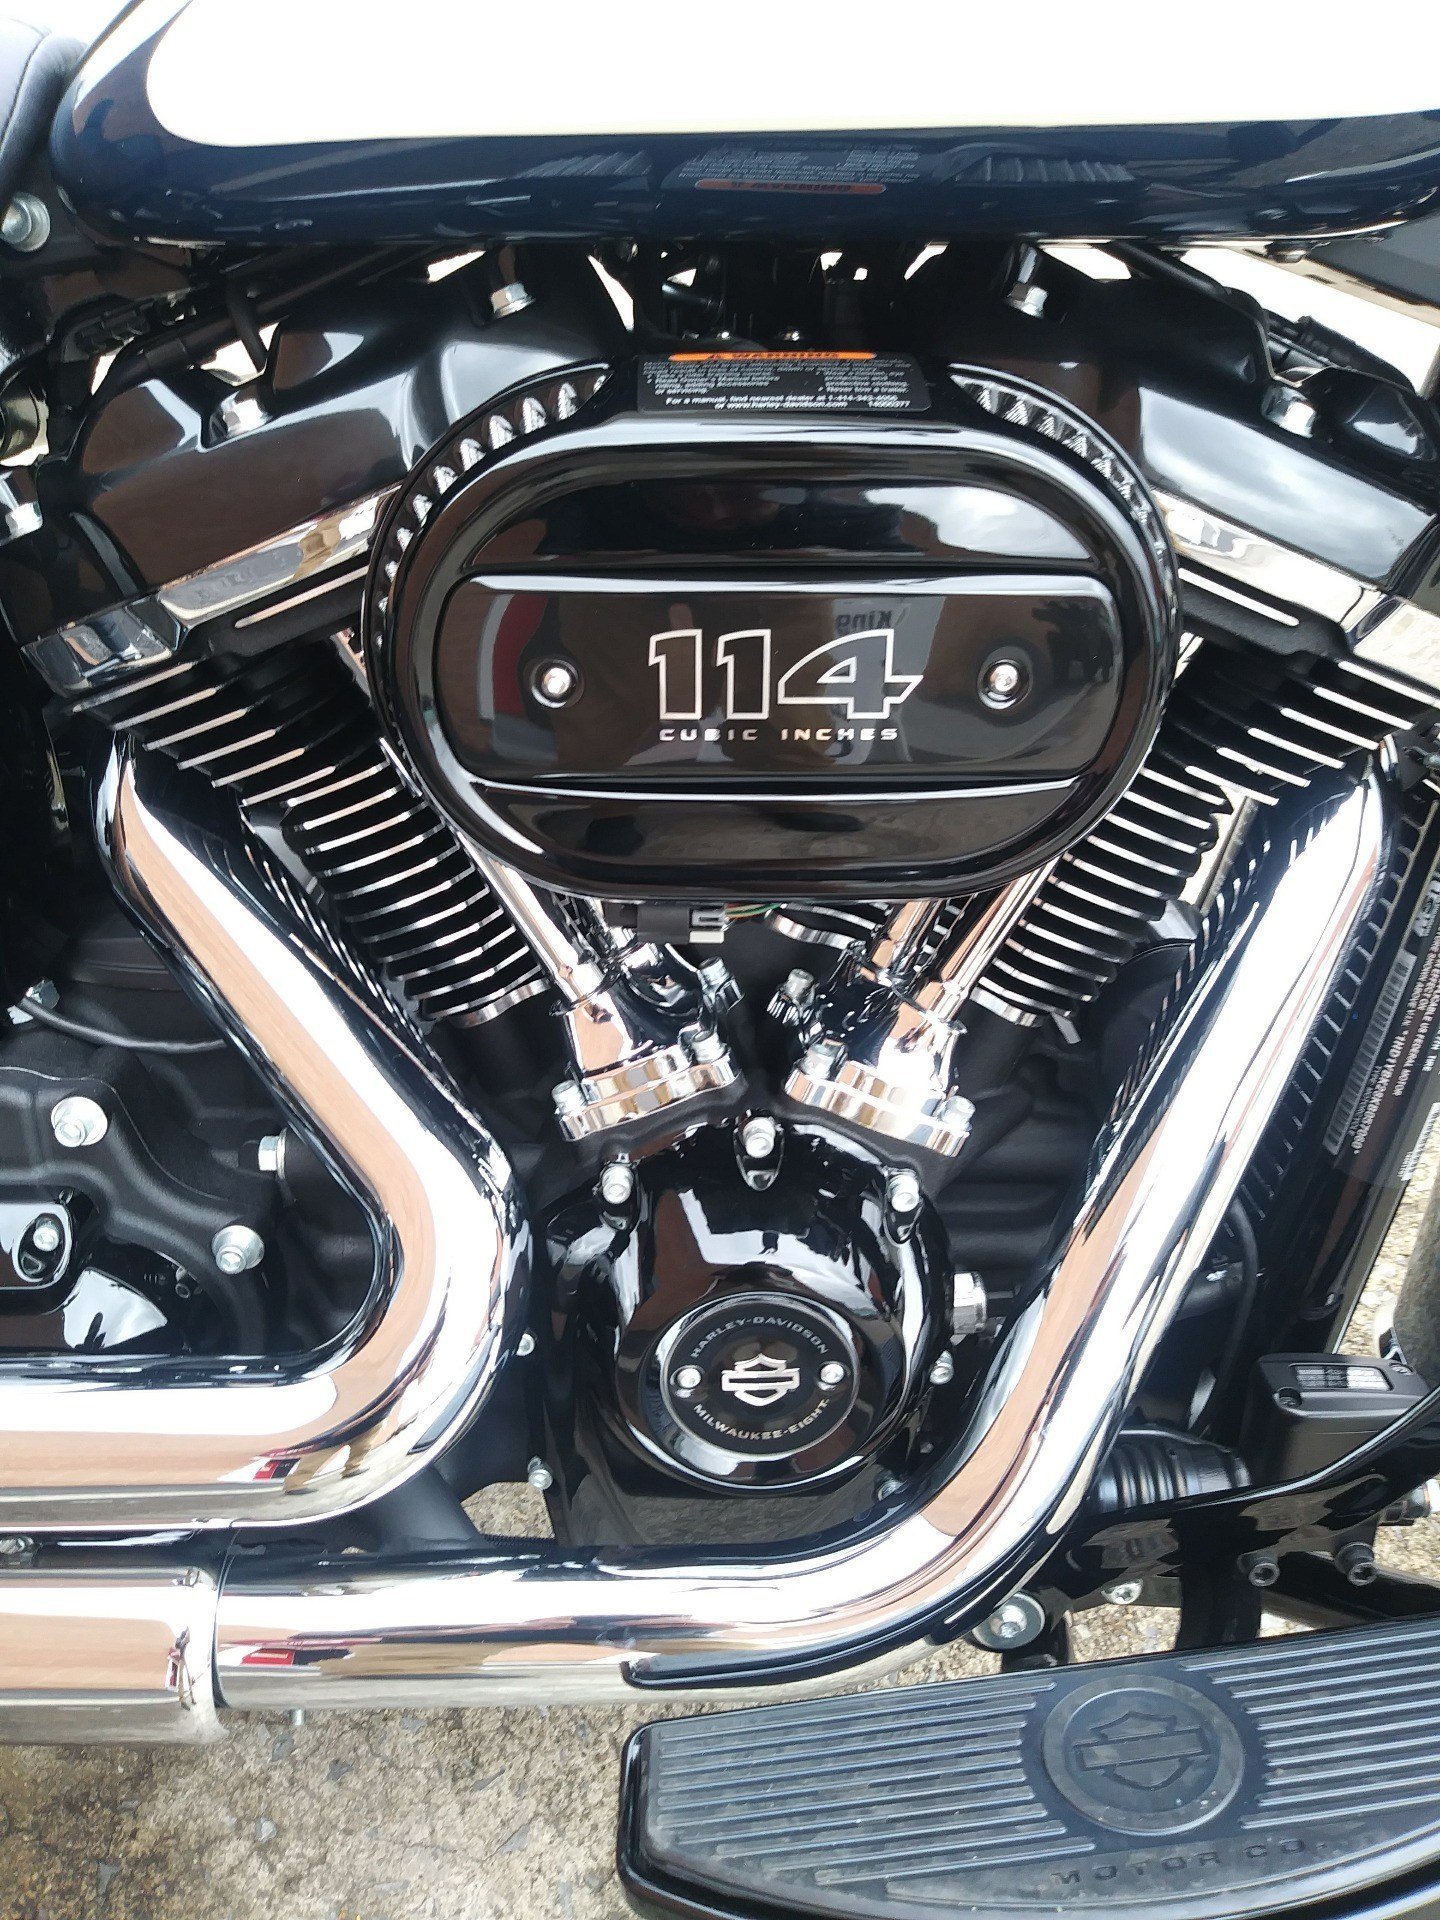 2019 Harley-Davidson Heritage Classic 114 in Kingsport, Tennessee - Photo 10